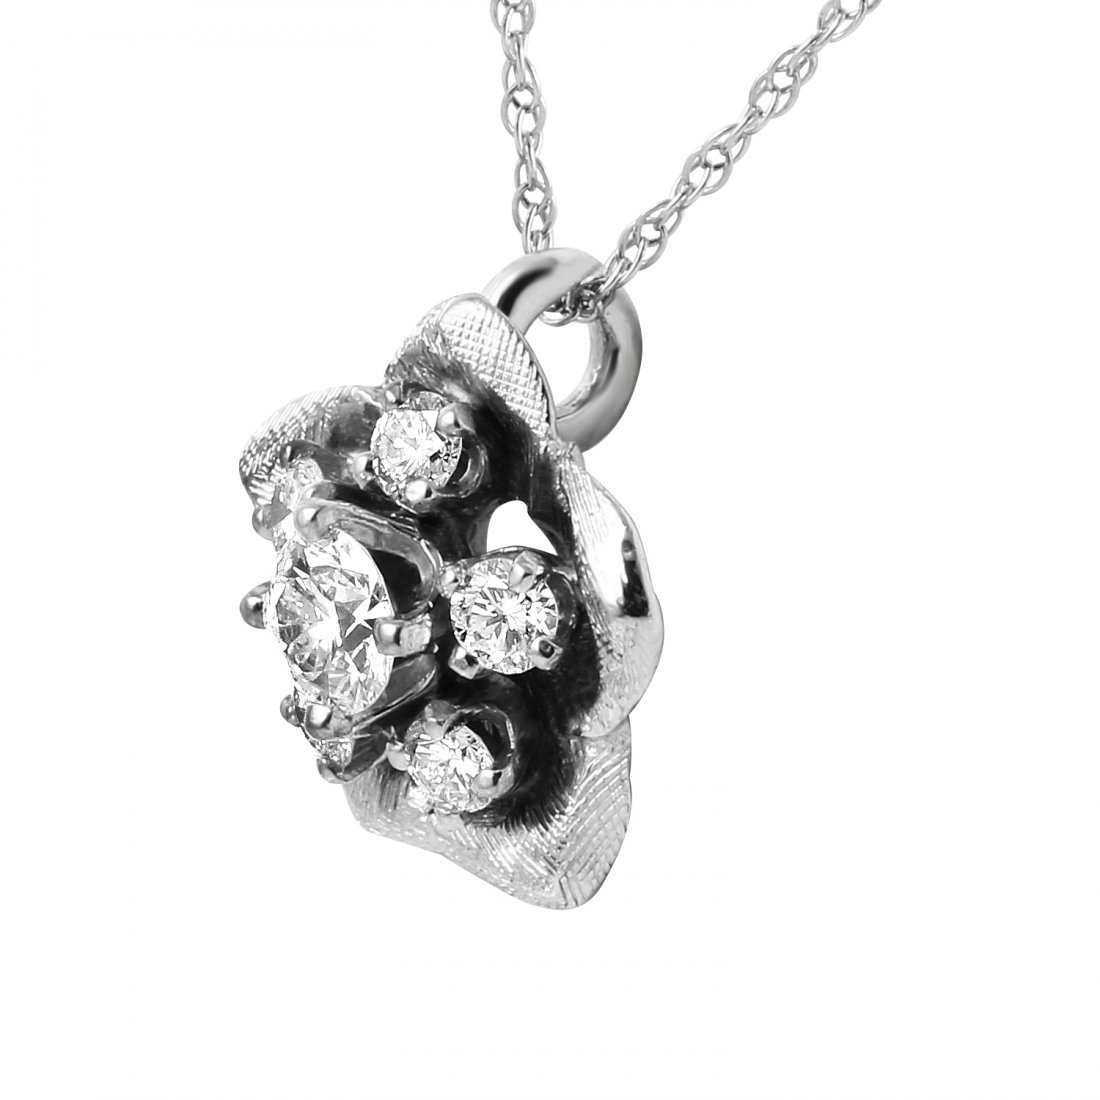 14KT White Gold Diamond Pendant & Chain - 2